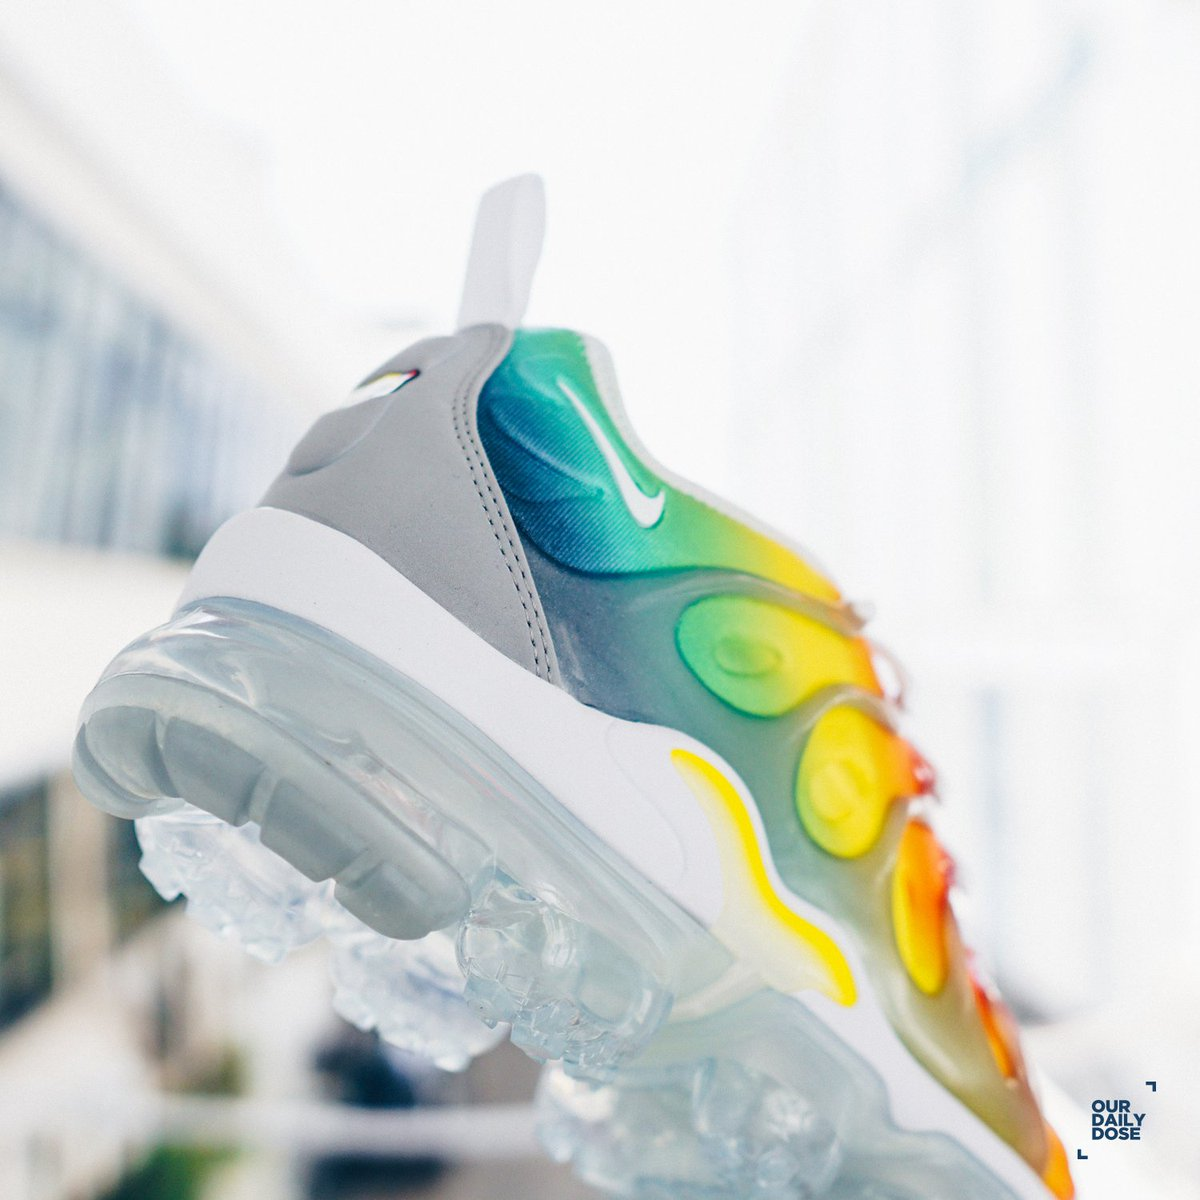 b4fe02f75c7 Nike Air Vapormax Plus - White Neptune Green-Dynamic Yellow is available at  all of ODD stores and webstore http   www.ourdailydose.net .